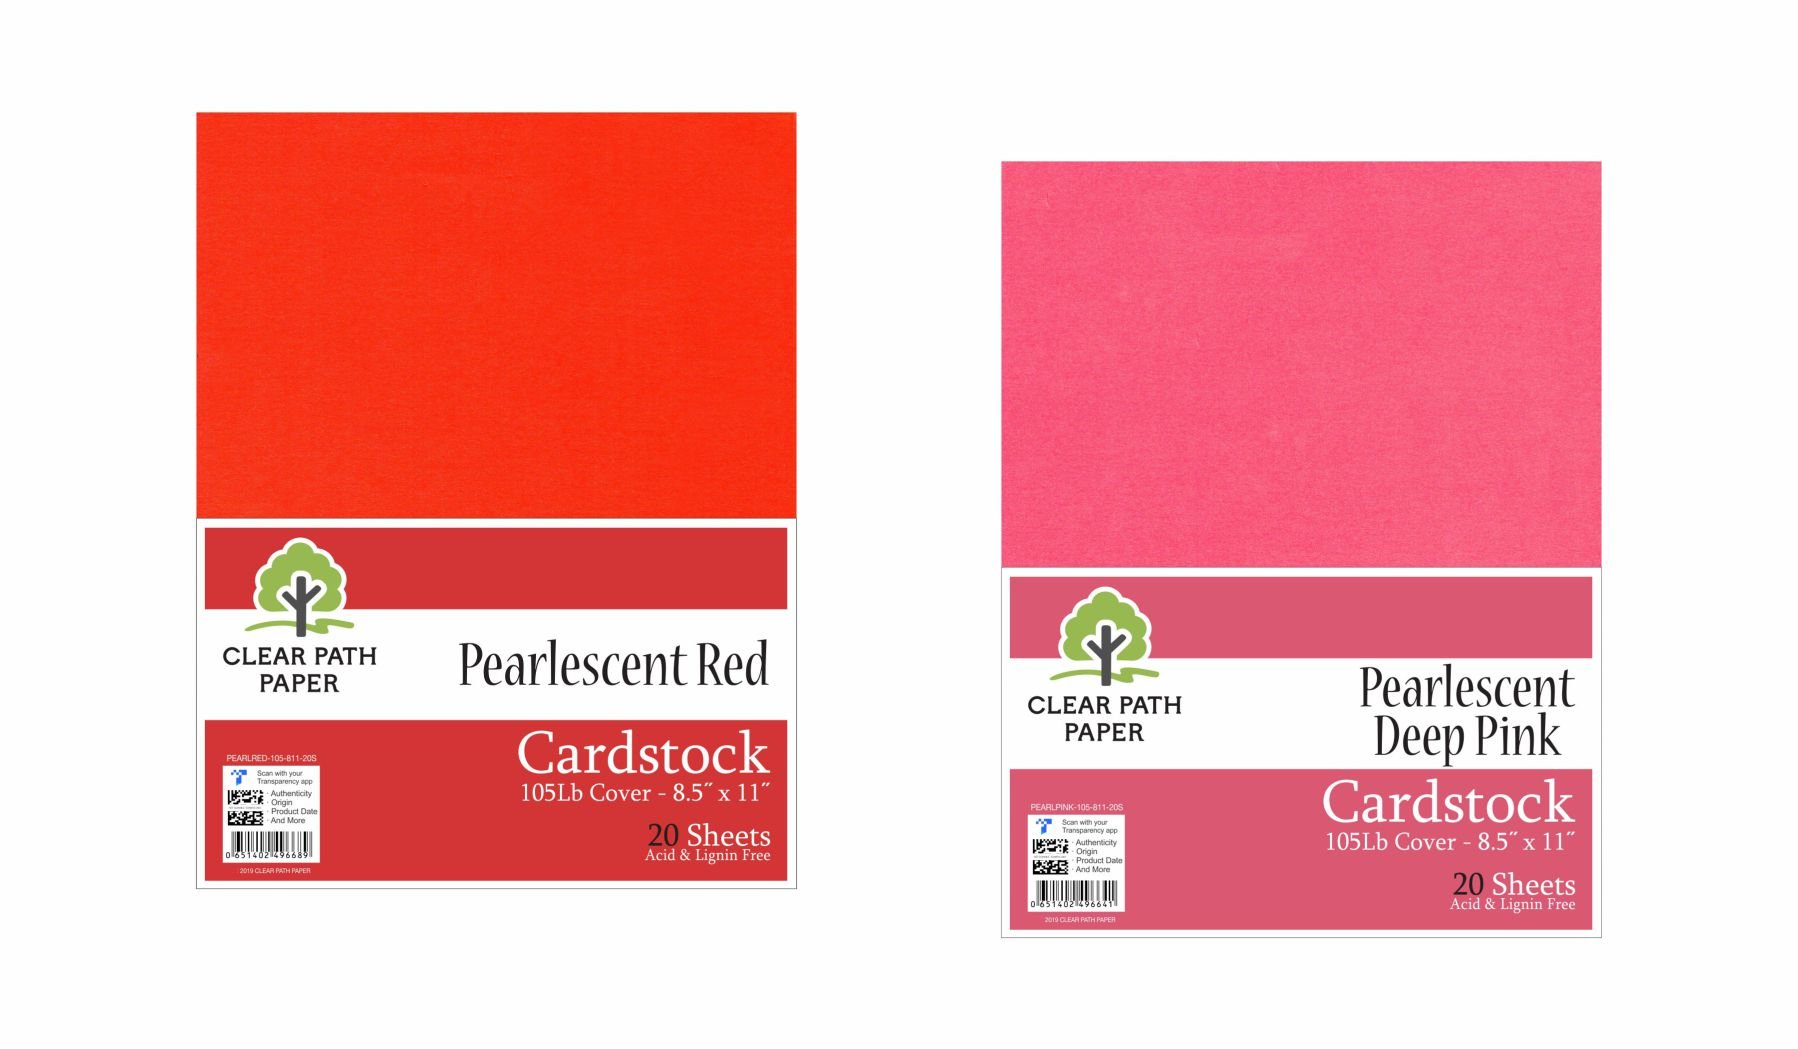 Image of an Amazon bundle of Clear Path Paper cardstock in Pearlescent Deep Pink and Pearlescent Red